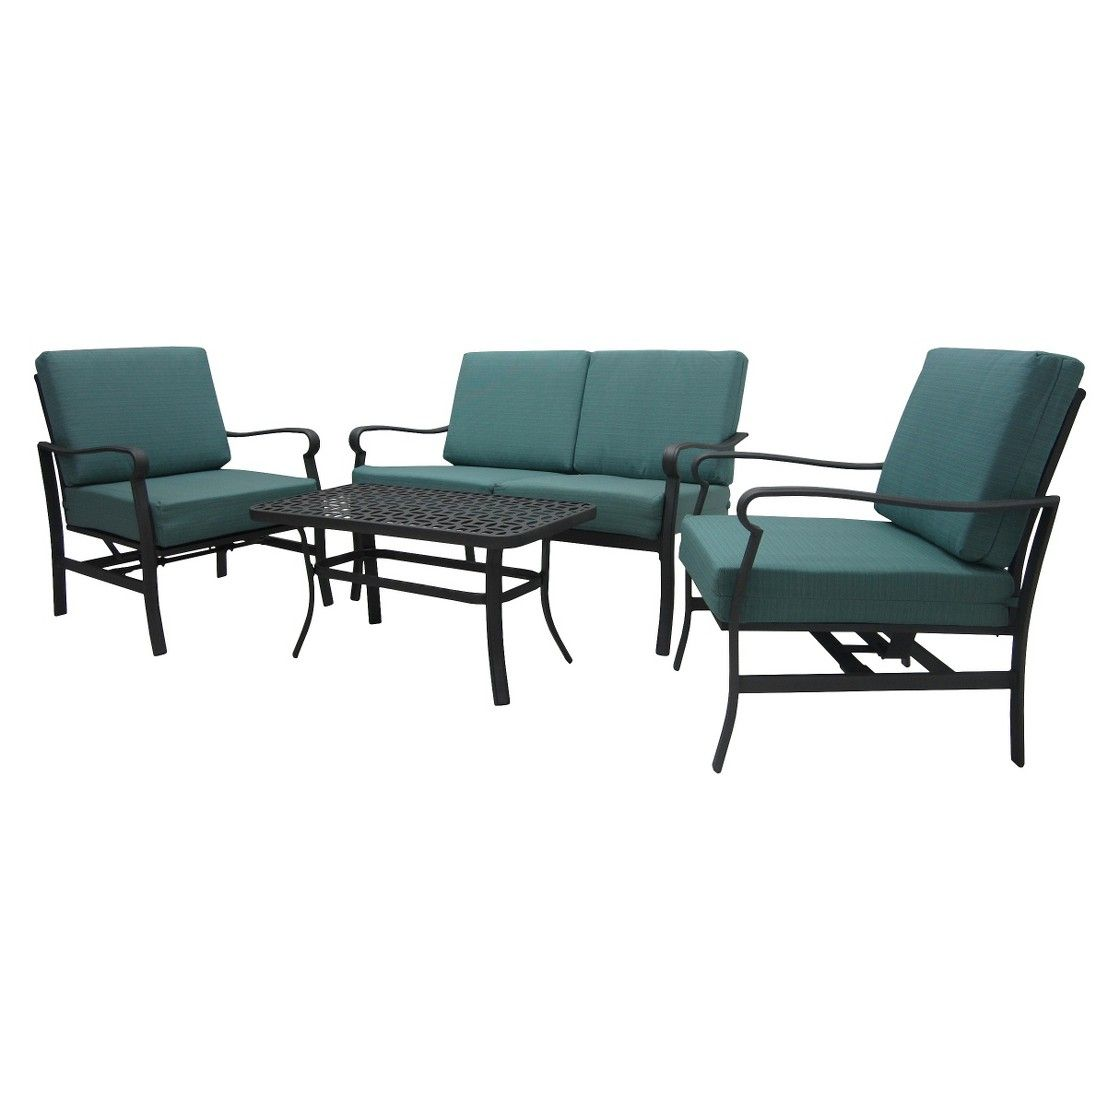 Threshold hawthorne piece metal patio conversation furniture set